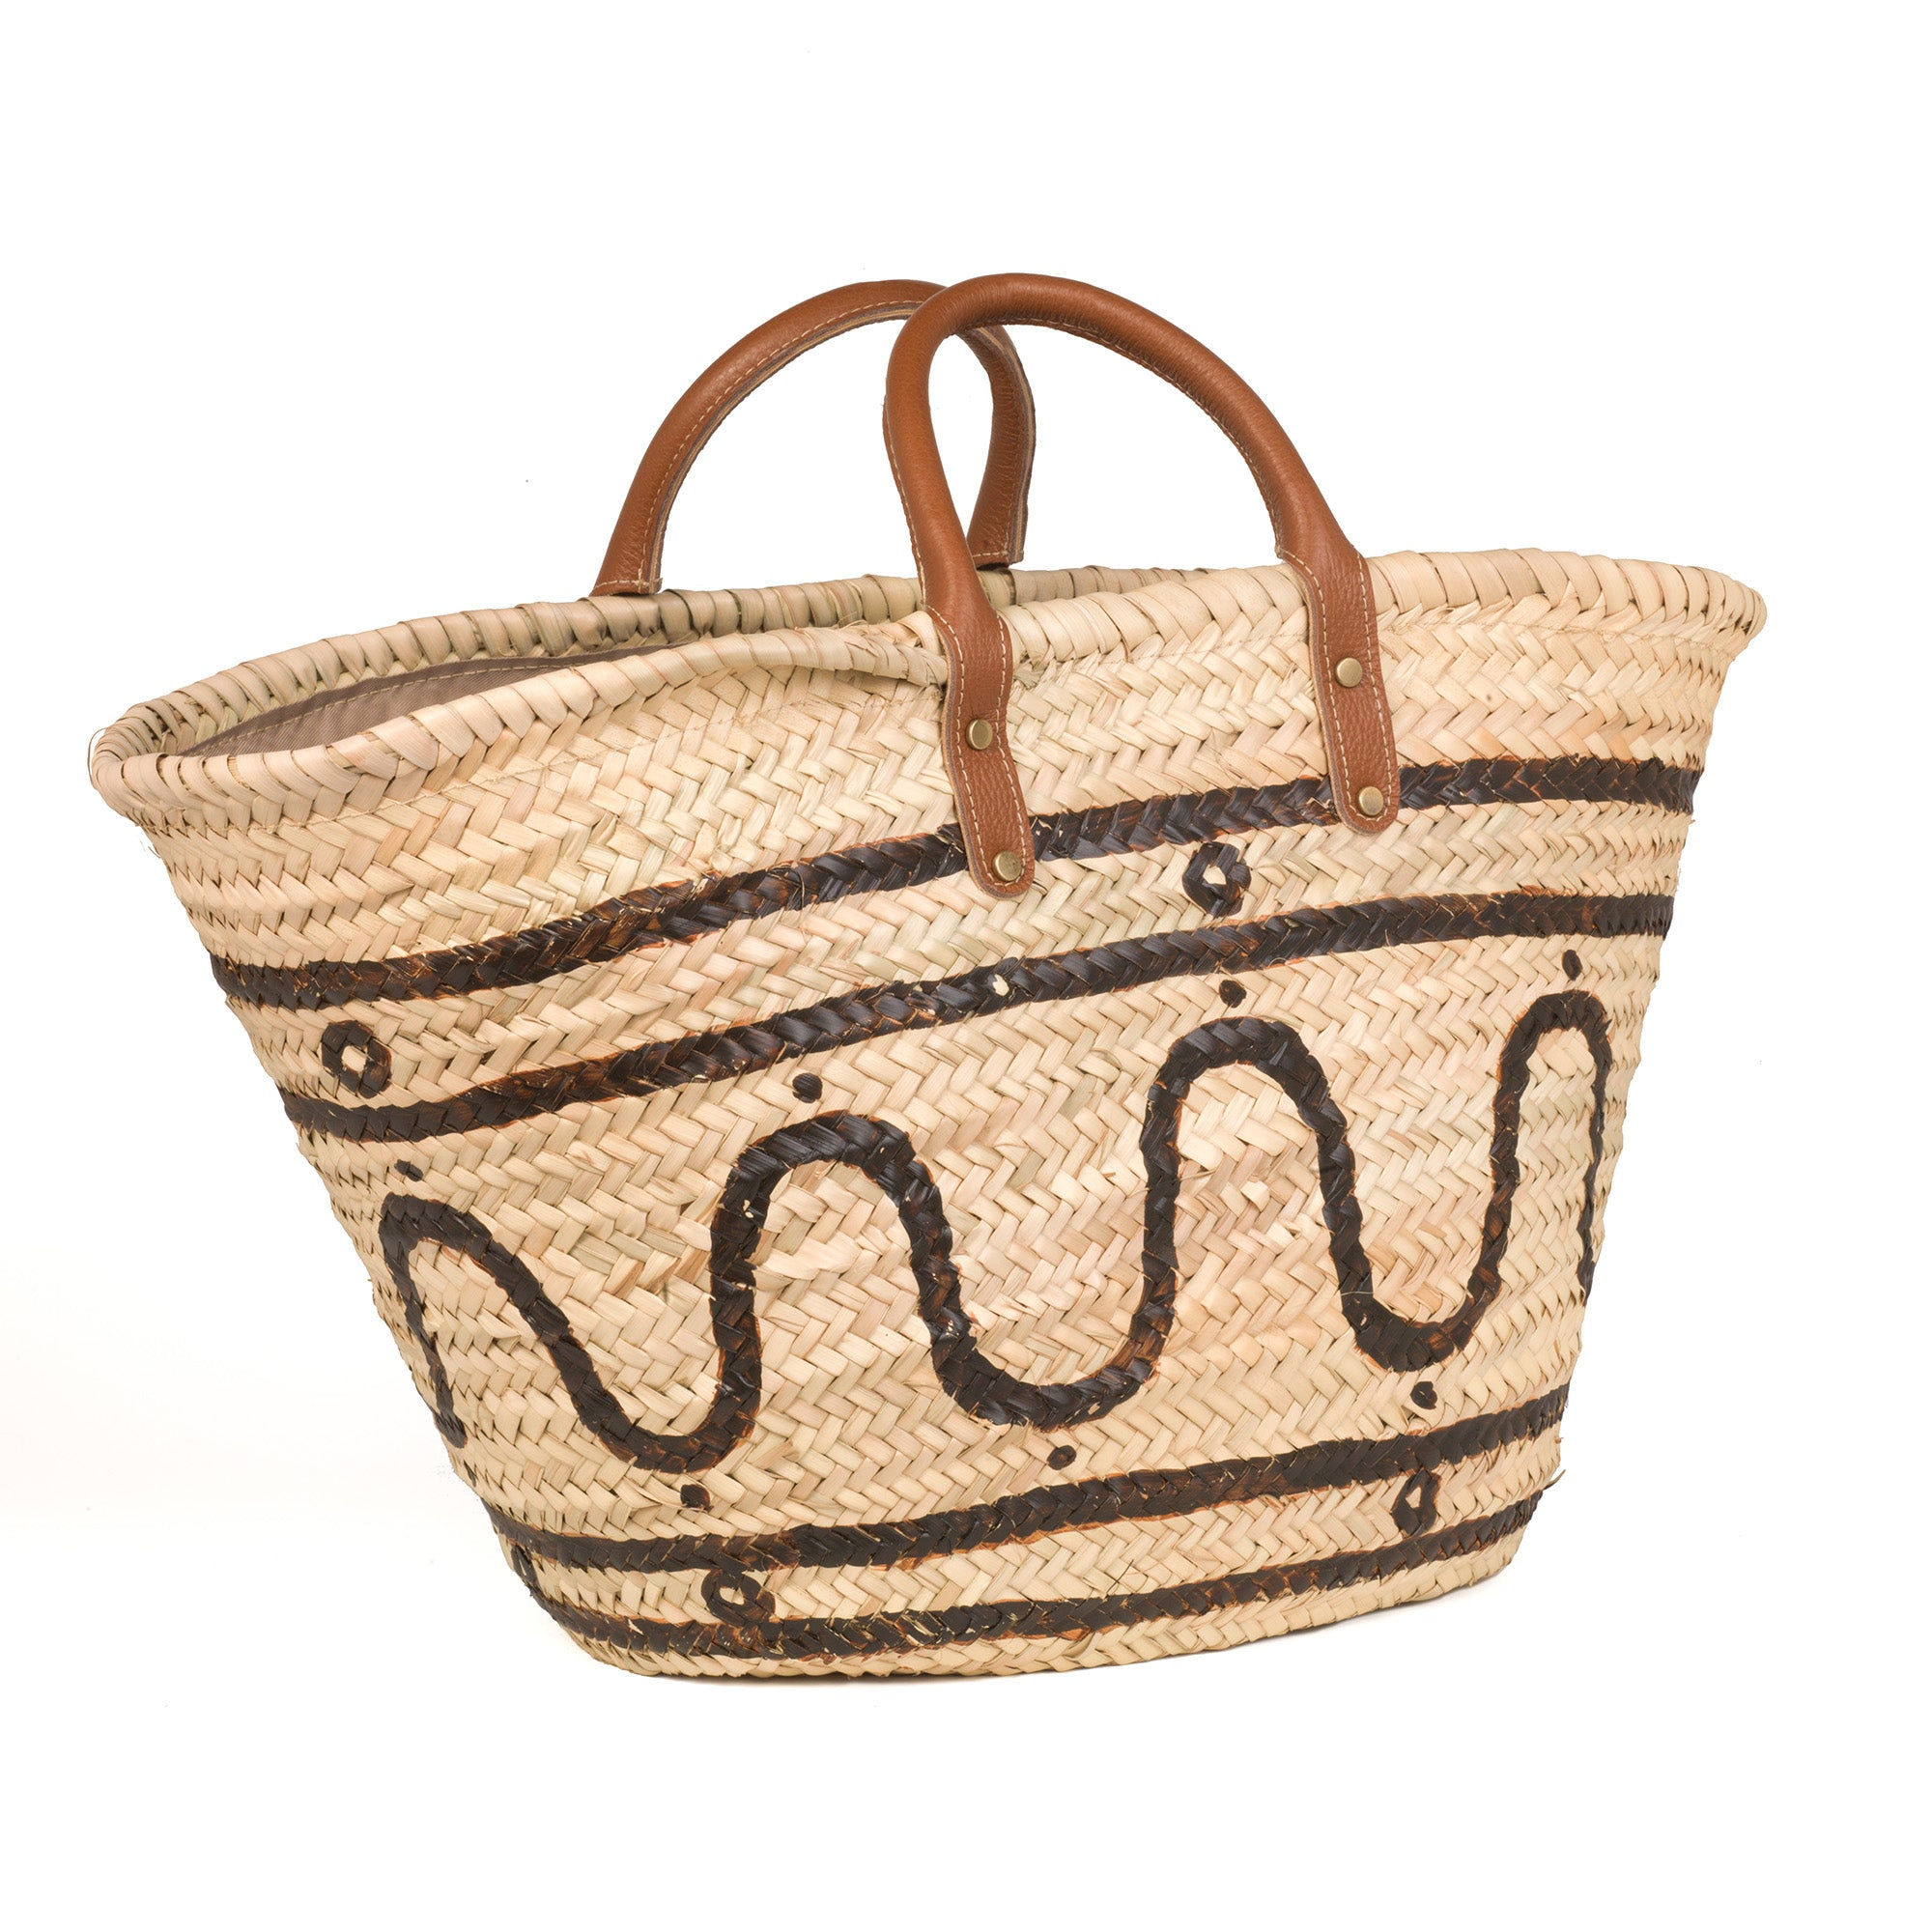 Kyma Basket with Leather Handles